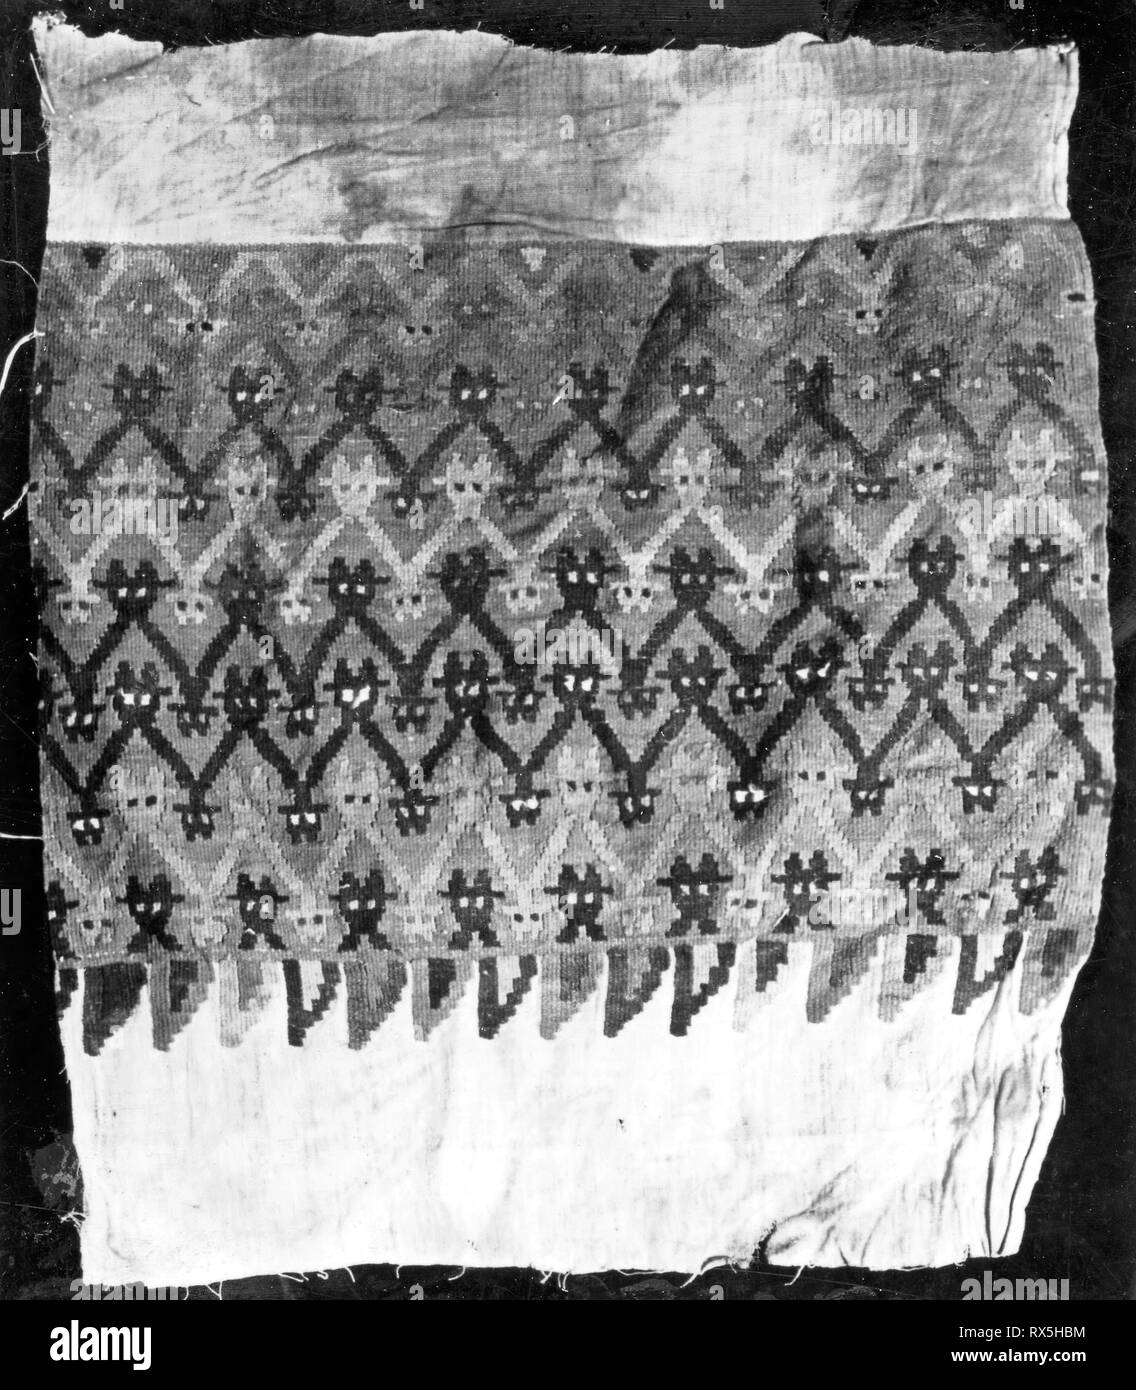 Fragment. Possibly south-central coast, Peru. Date: 1000-1476. Dimensions: 36.2 x 40.6 cm (14 1/4 x 16 in.). Slit tapestry weave. Origin: Peru. Museum: The Chicago Art Institute. - Stock Image